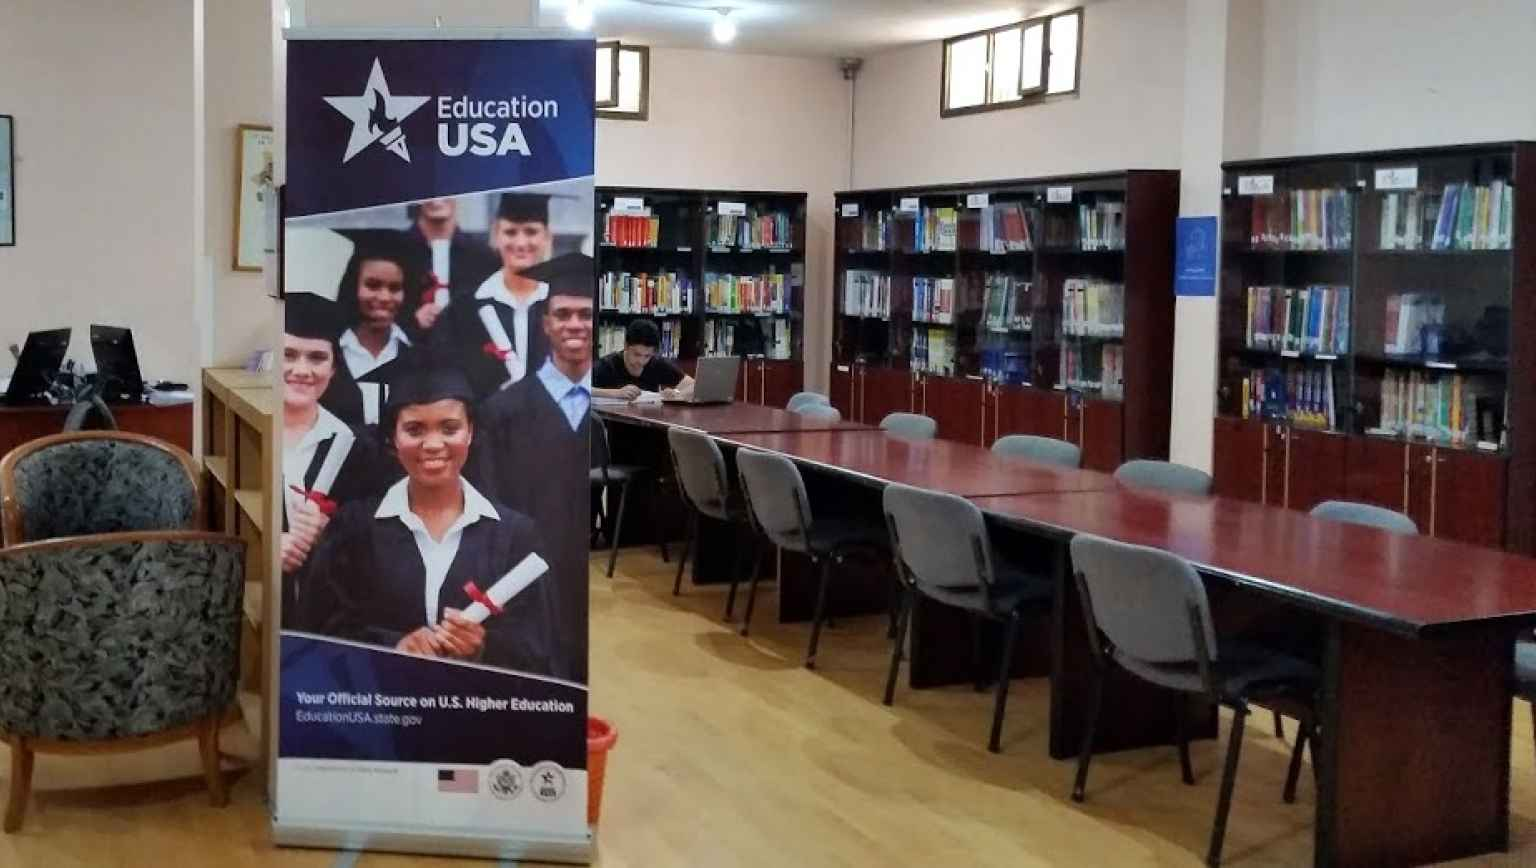 EducationUSA lirbary and study room in Sanaa, Yemen